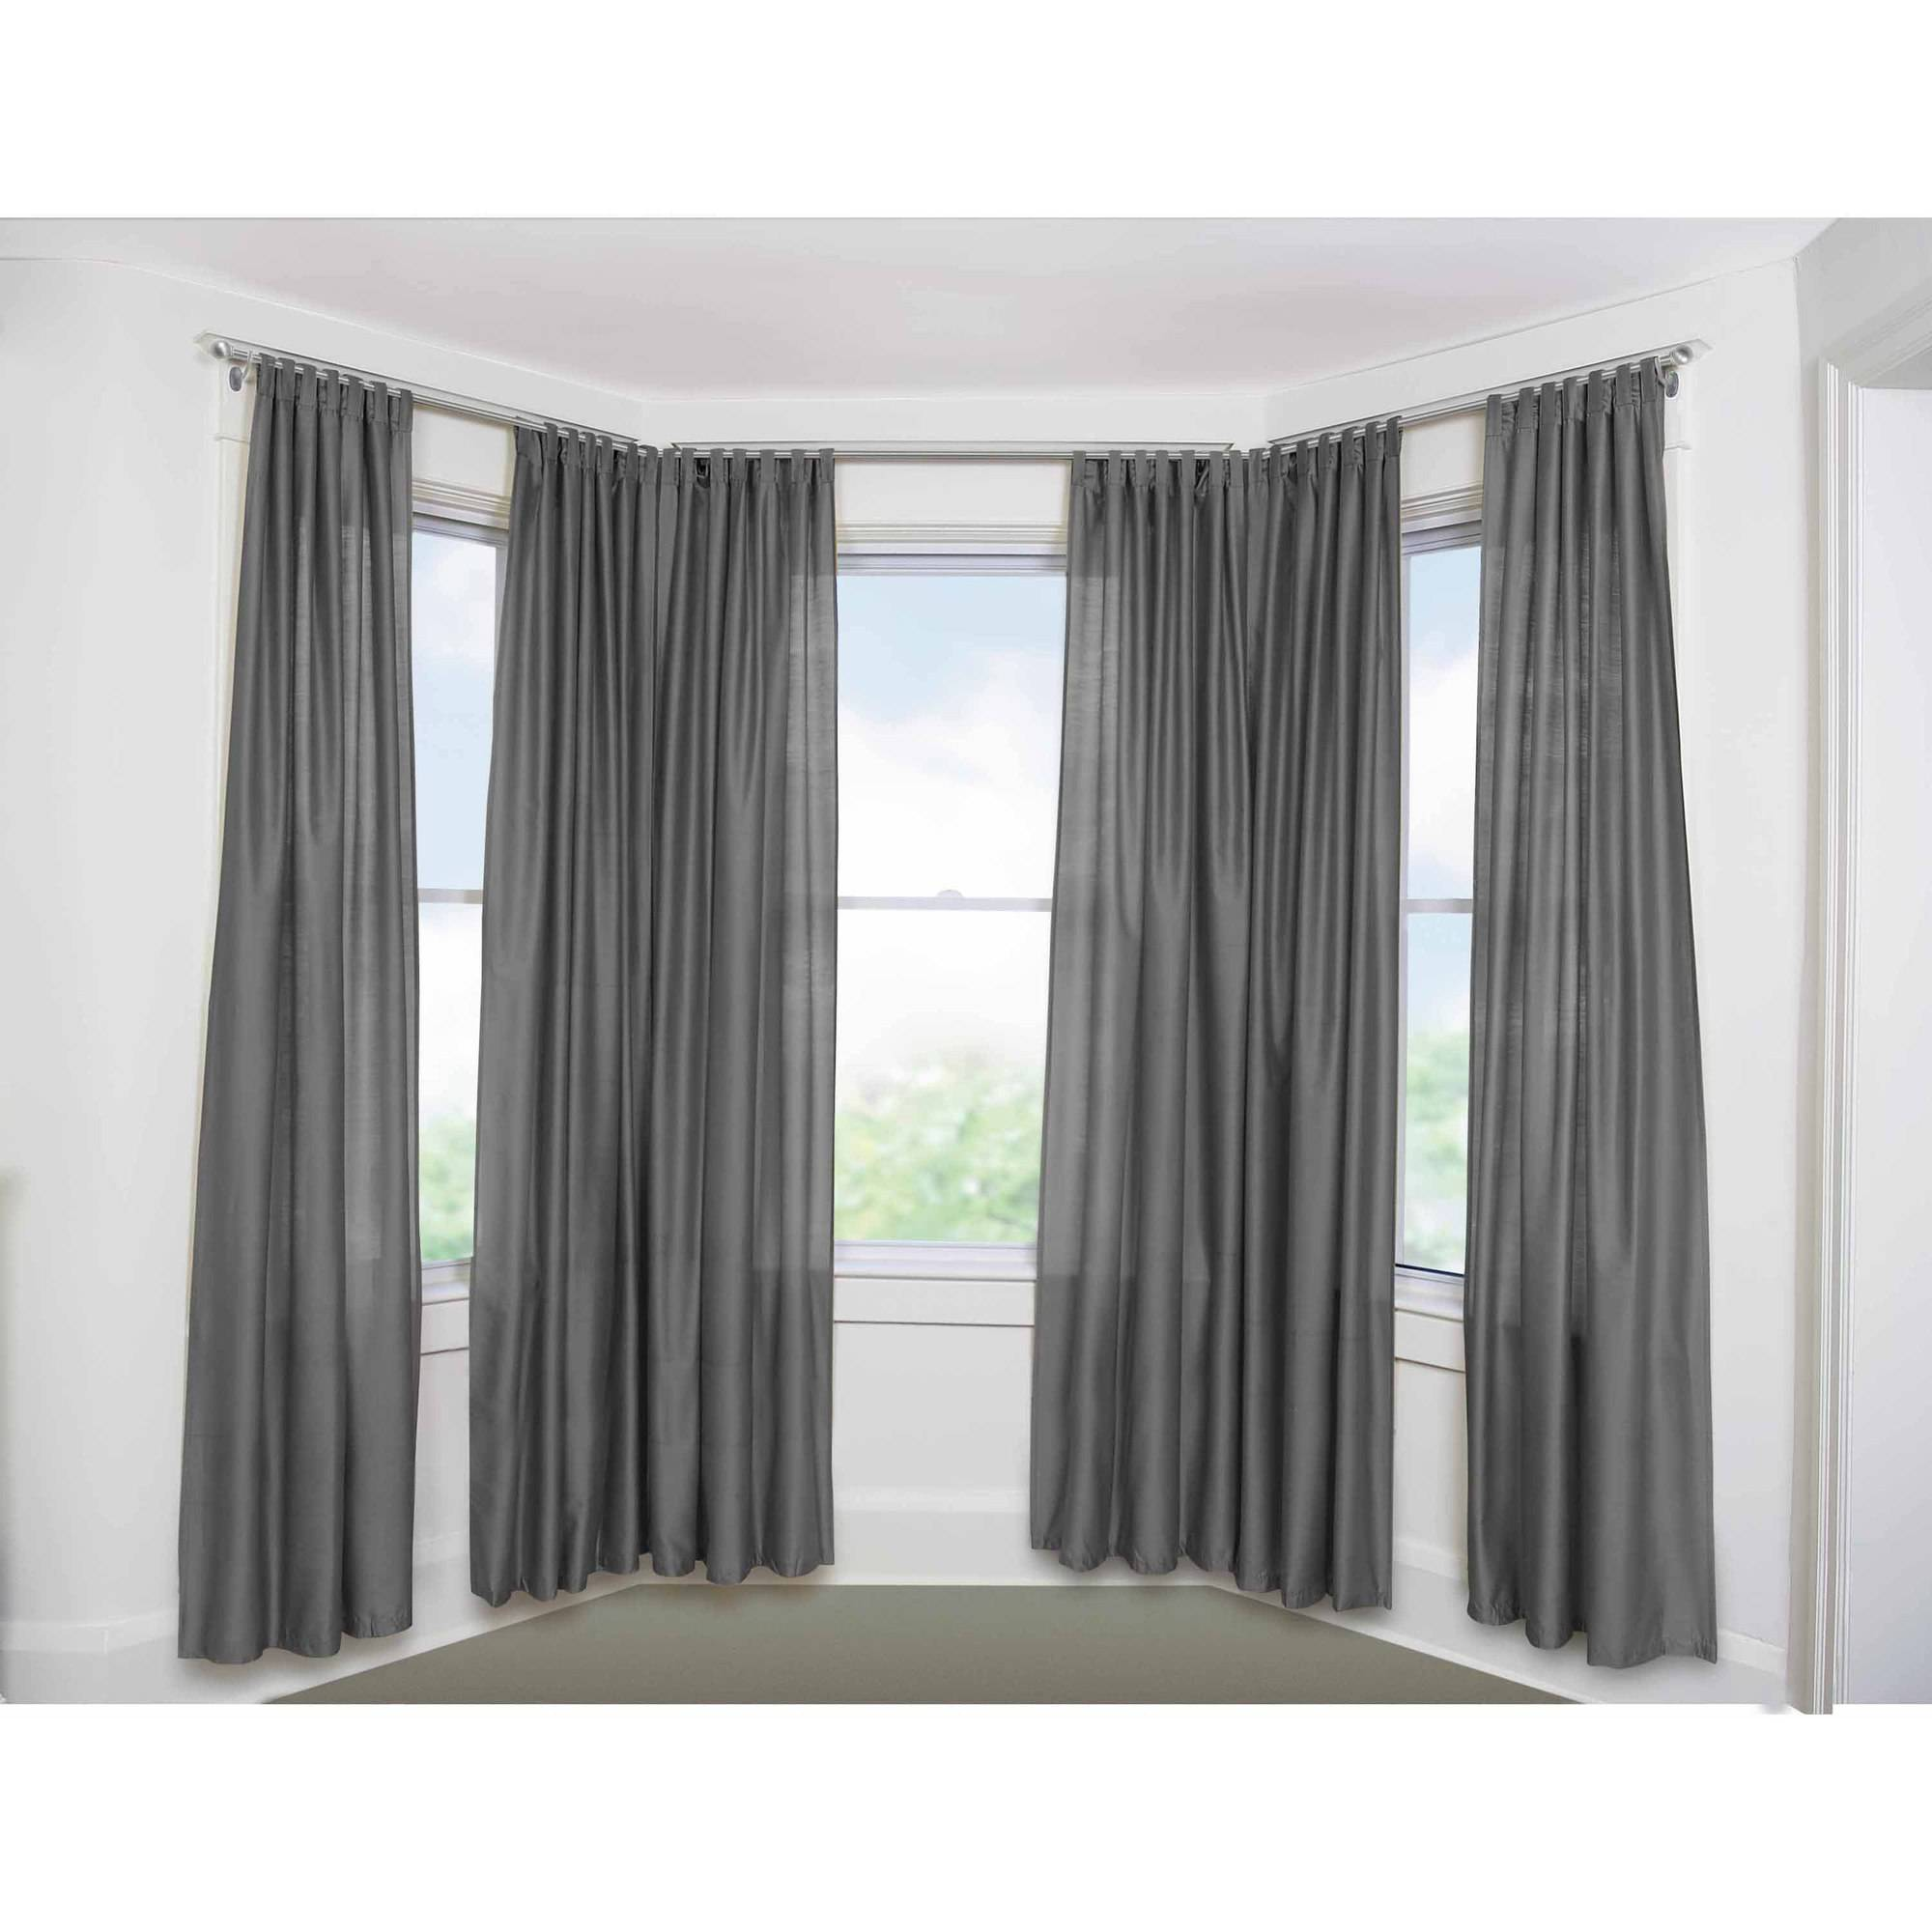 "Bay Window Curtain Rod Set 5 8"" Walmart Com"